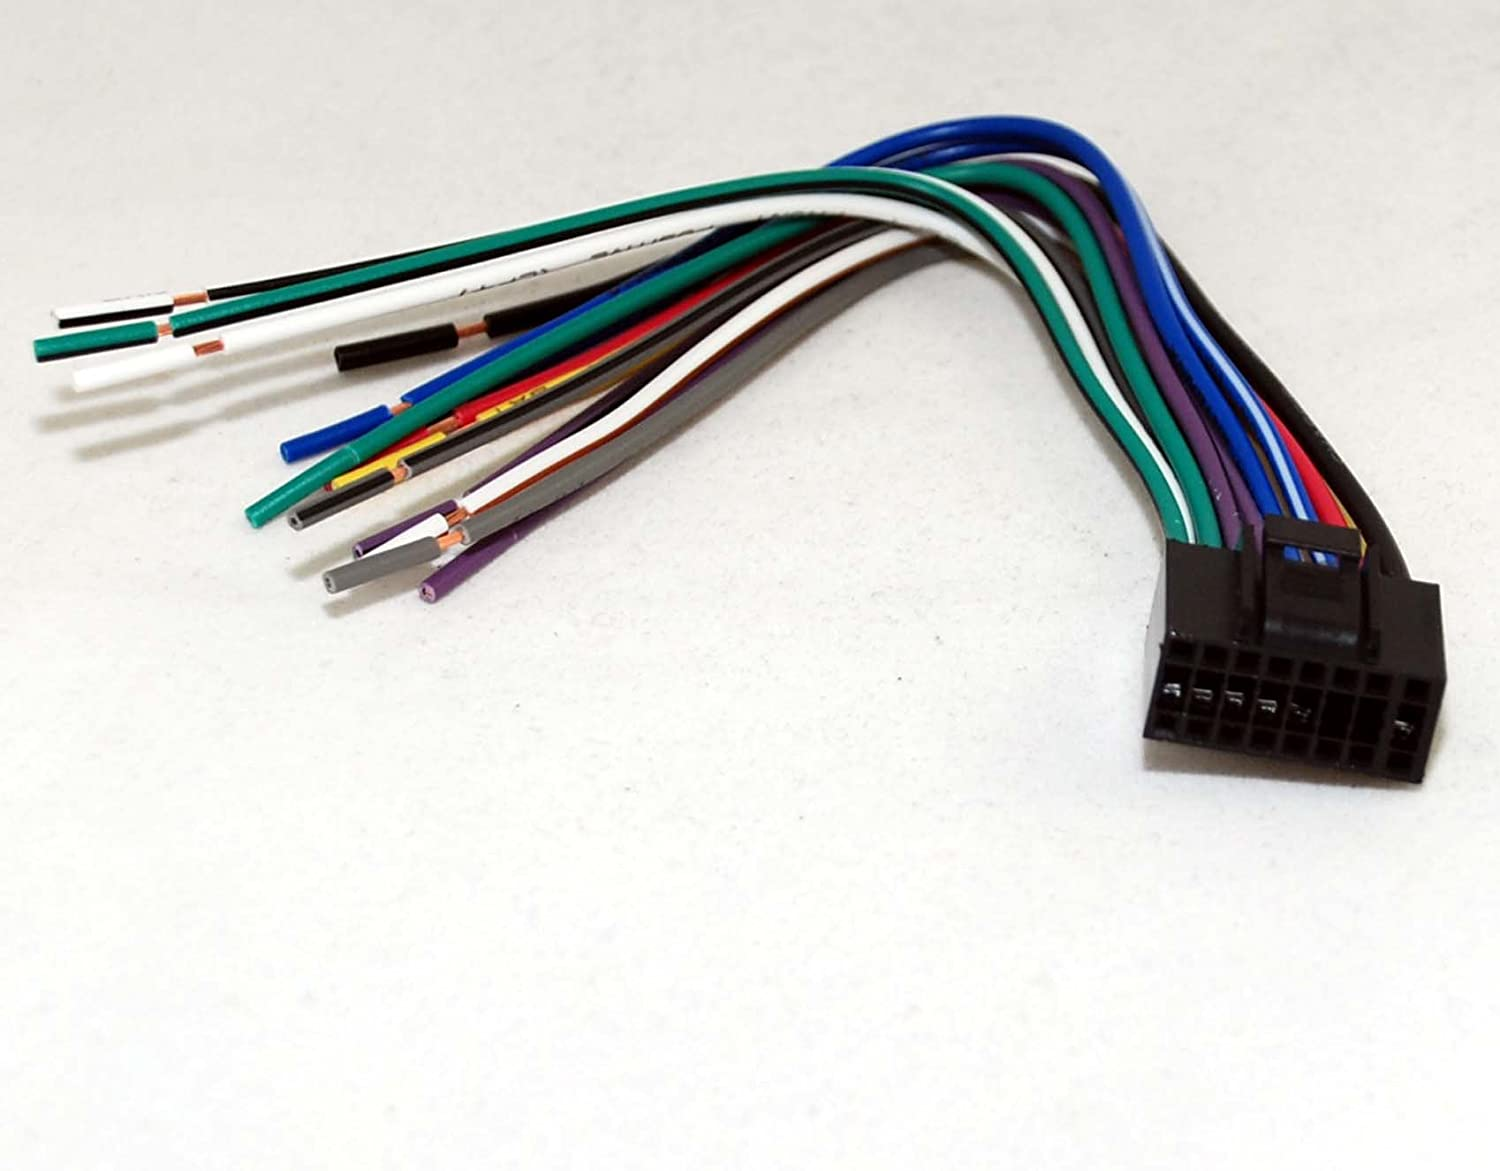 61Rzeblbo0L._SL1500_ amazon com xtenzi harness for dual 16 pin wire harness xdvd8181 dual xd1222 wiring harness at edmiracle.co